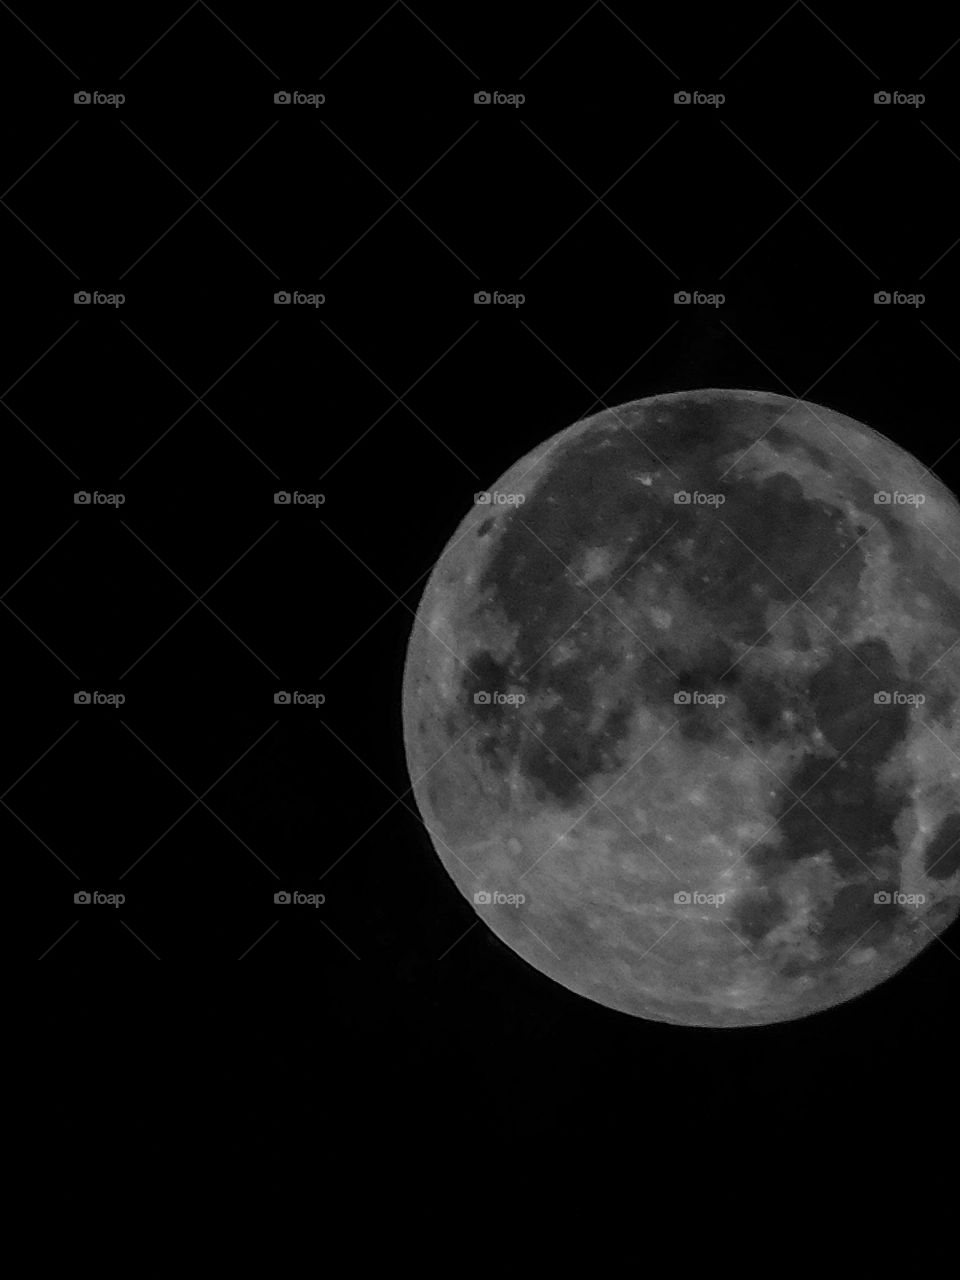 Full moon with Dark Black background having detail structure.